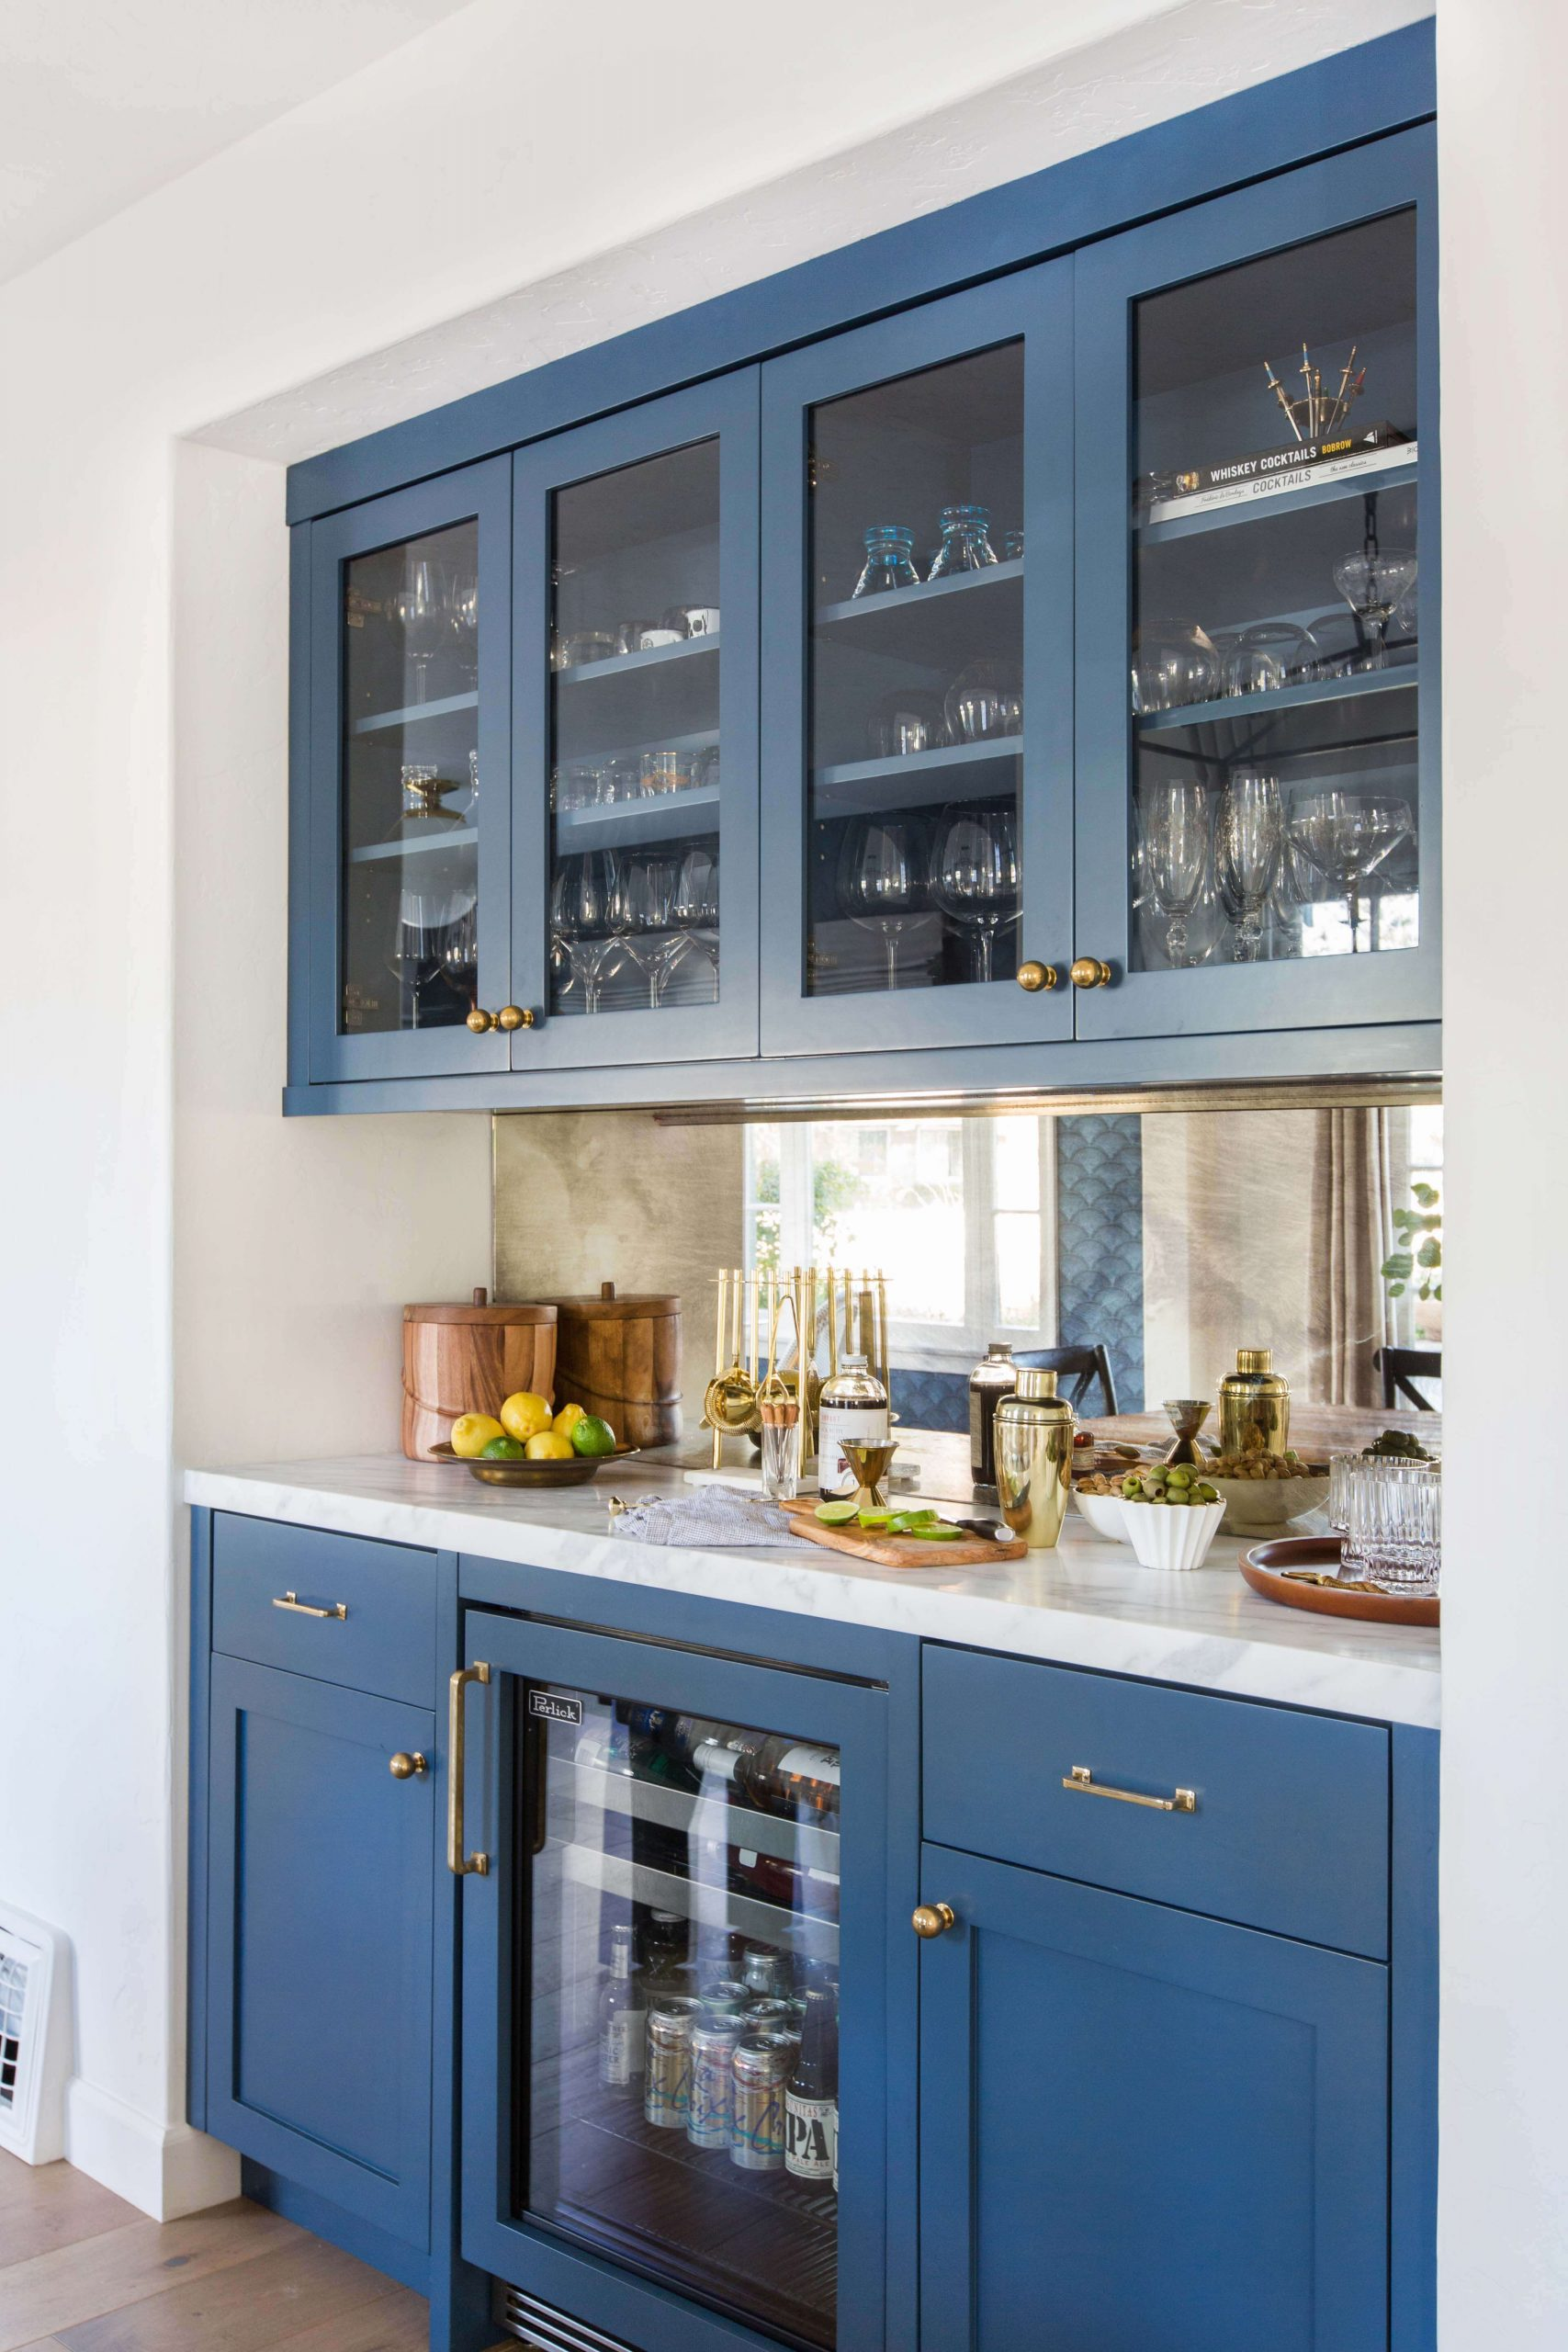 8 Home Bar Ideas To Elevate Your Home Decor_3